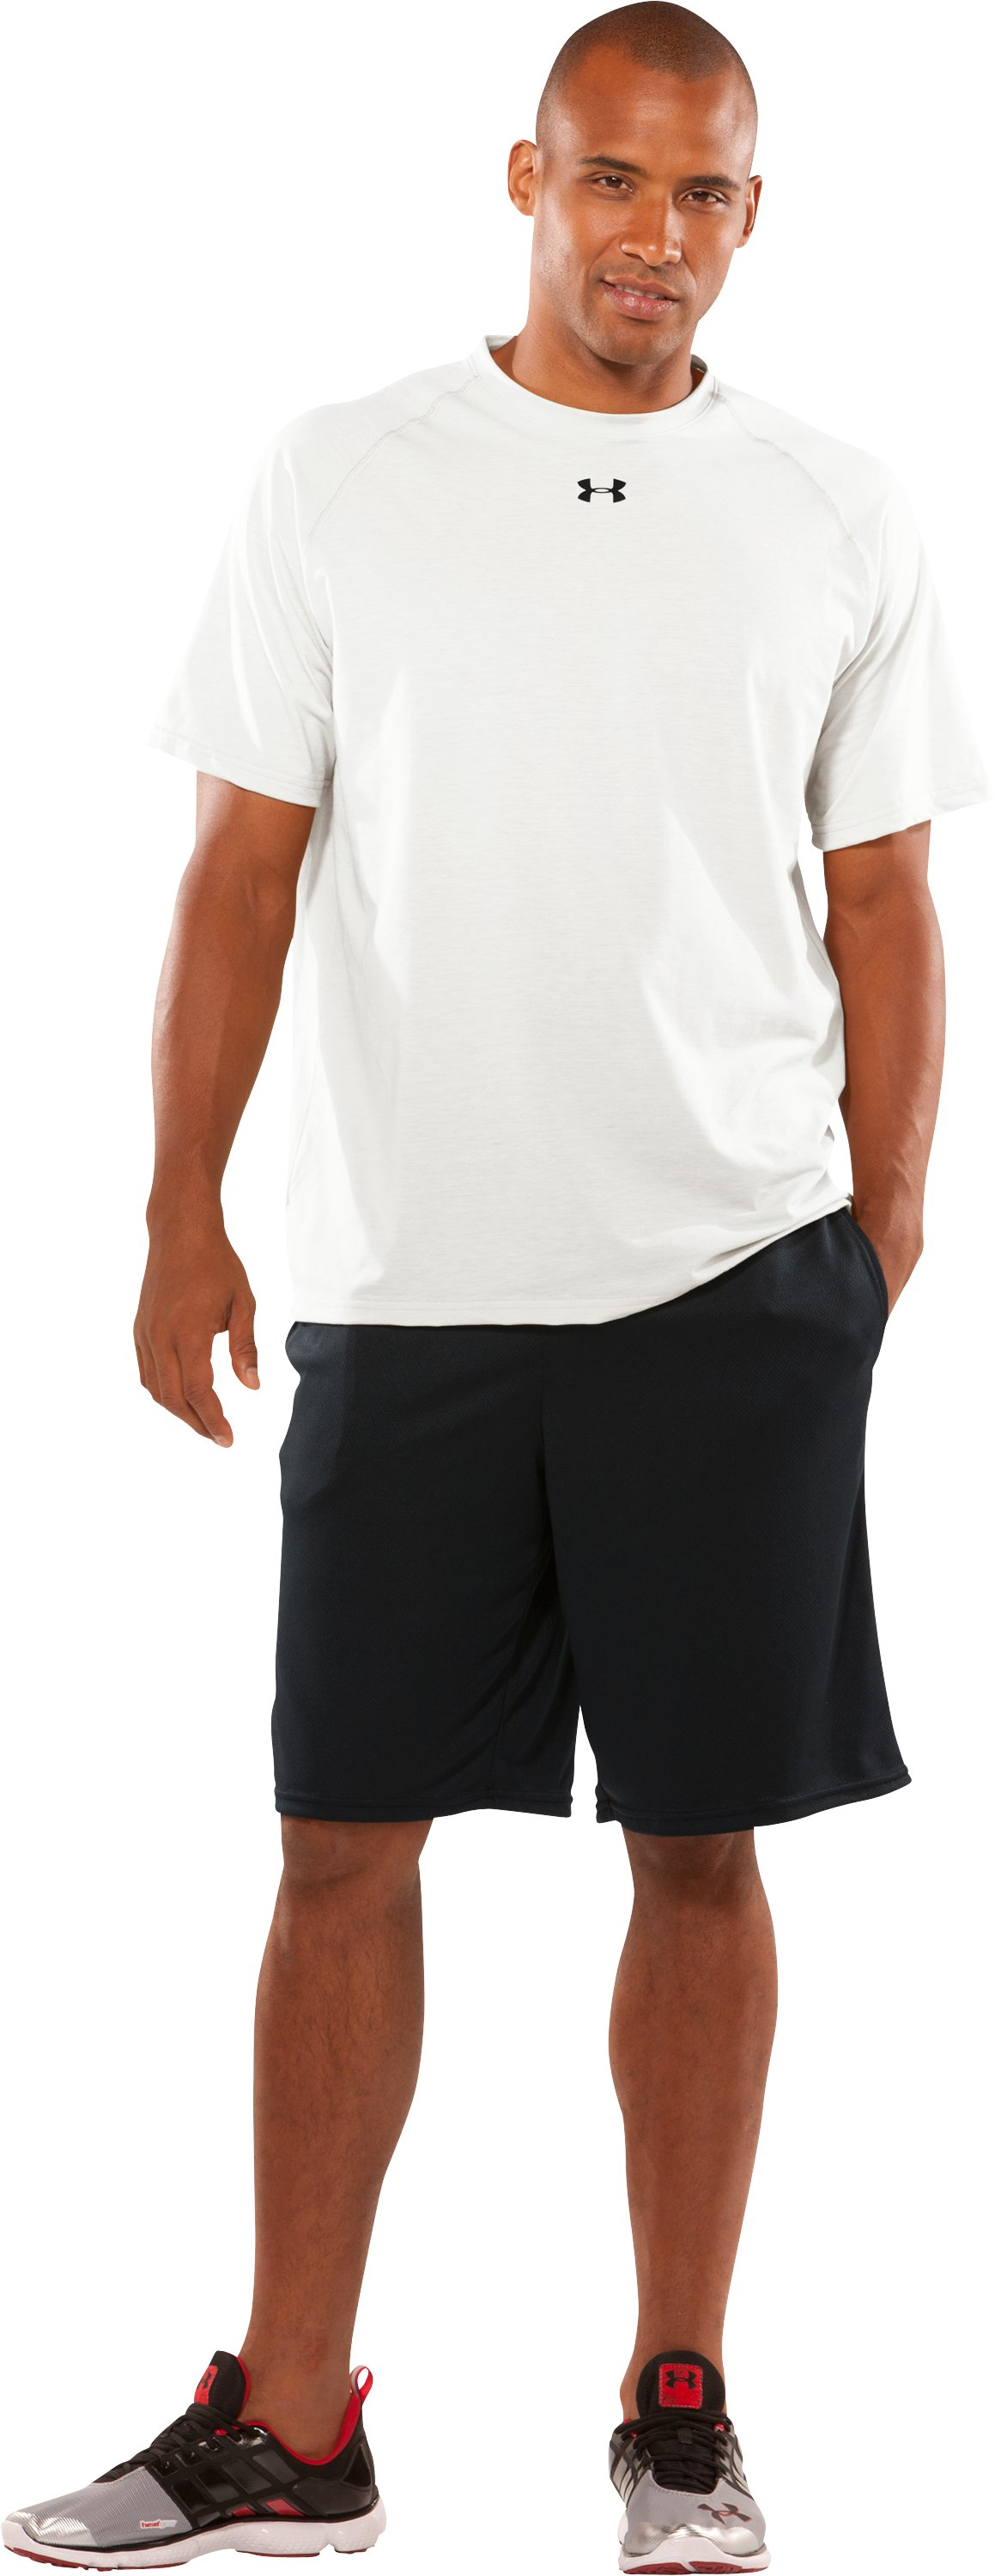 Men's Team UA Tech™ Short Sleeve T-Shirt, White